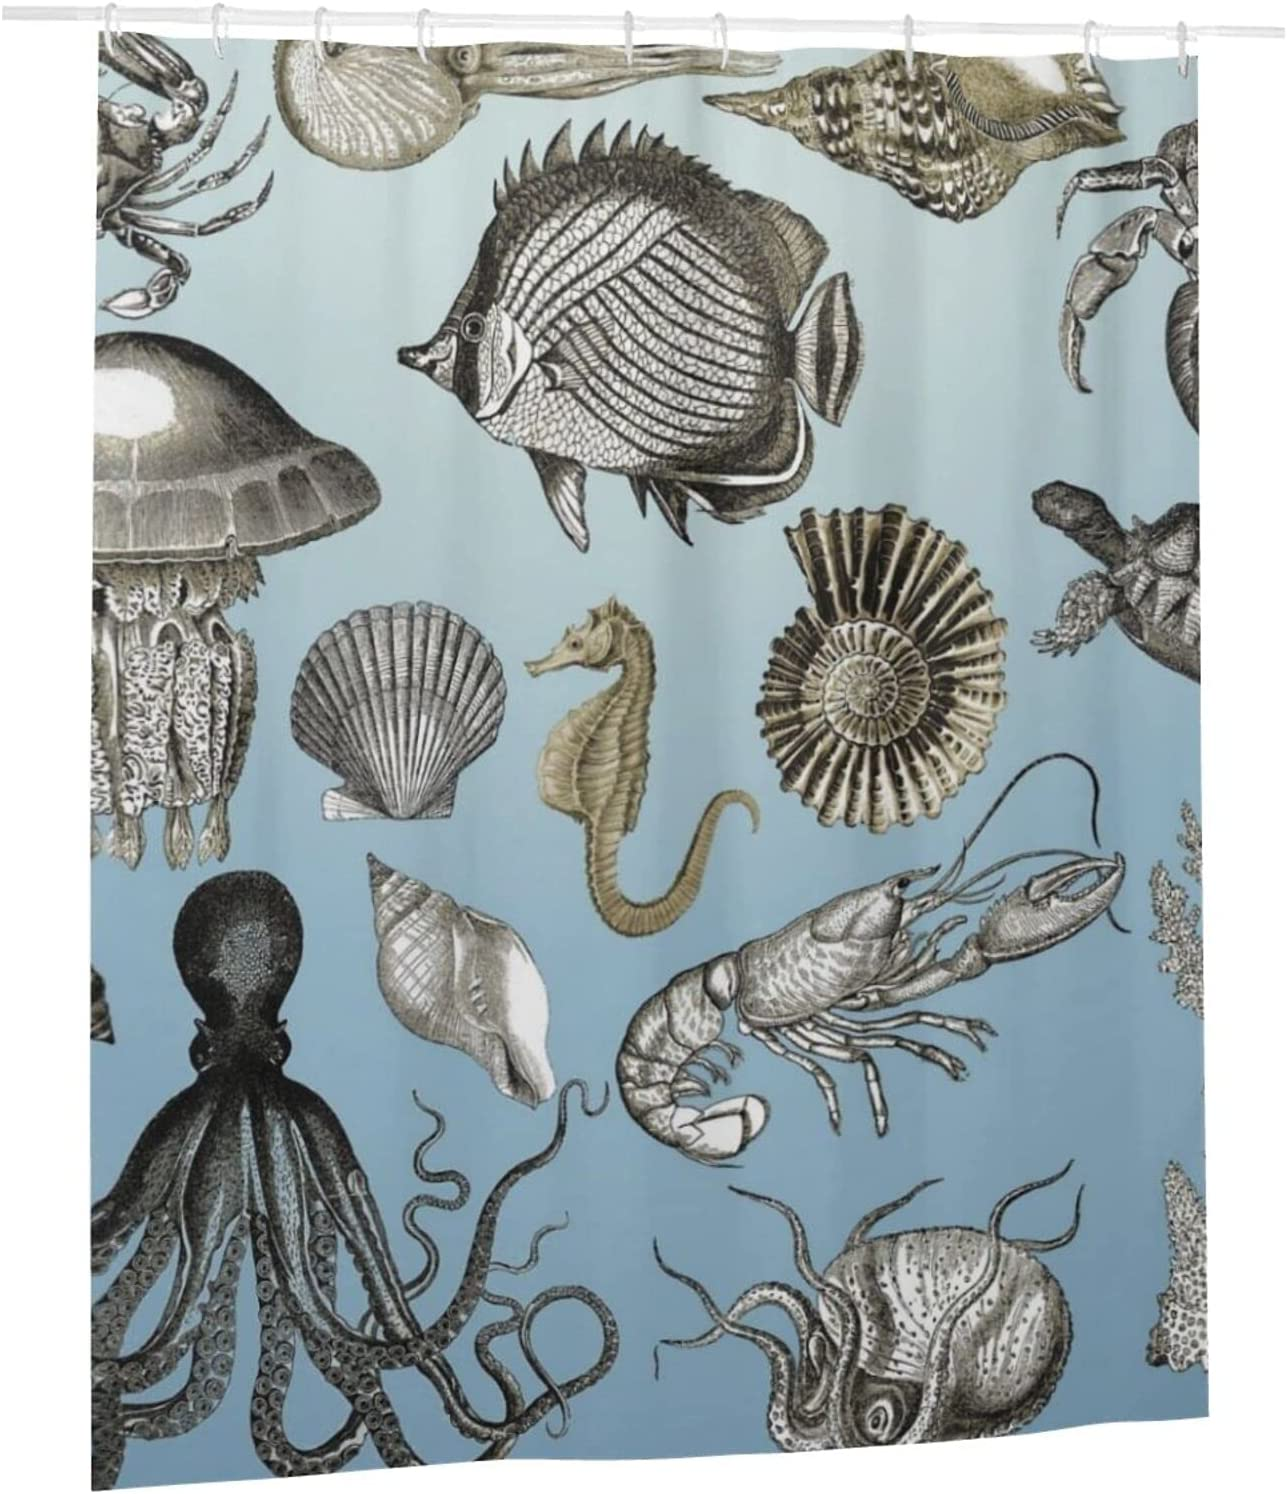 WIUEZWY Marine 40% OFF Cheap Sale Animal Low price Waterproof Shower Fabric Curtains Odorles